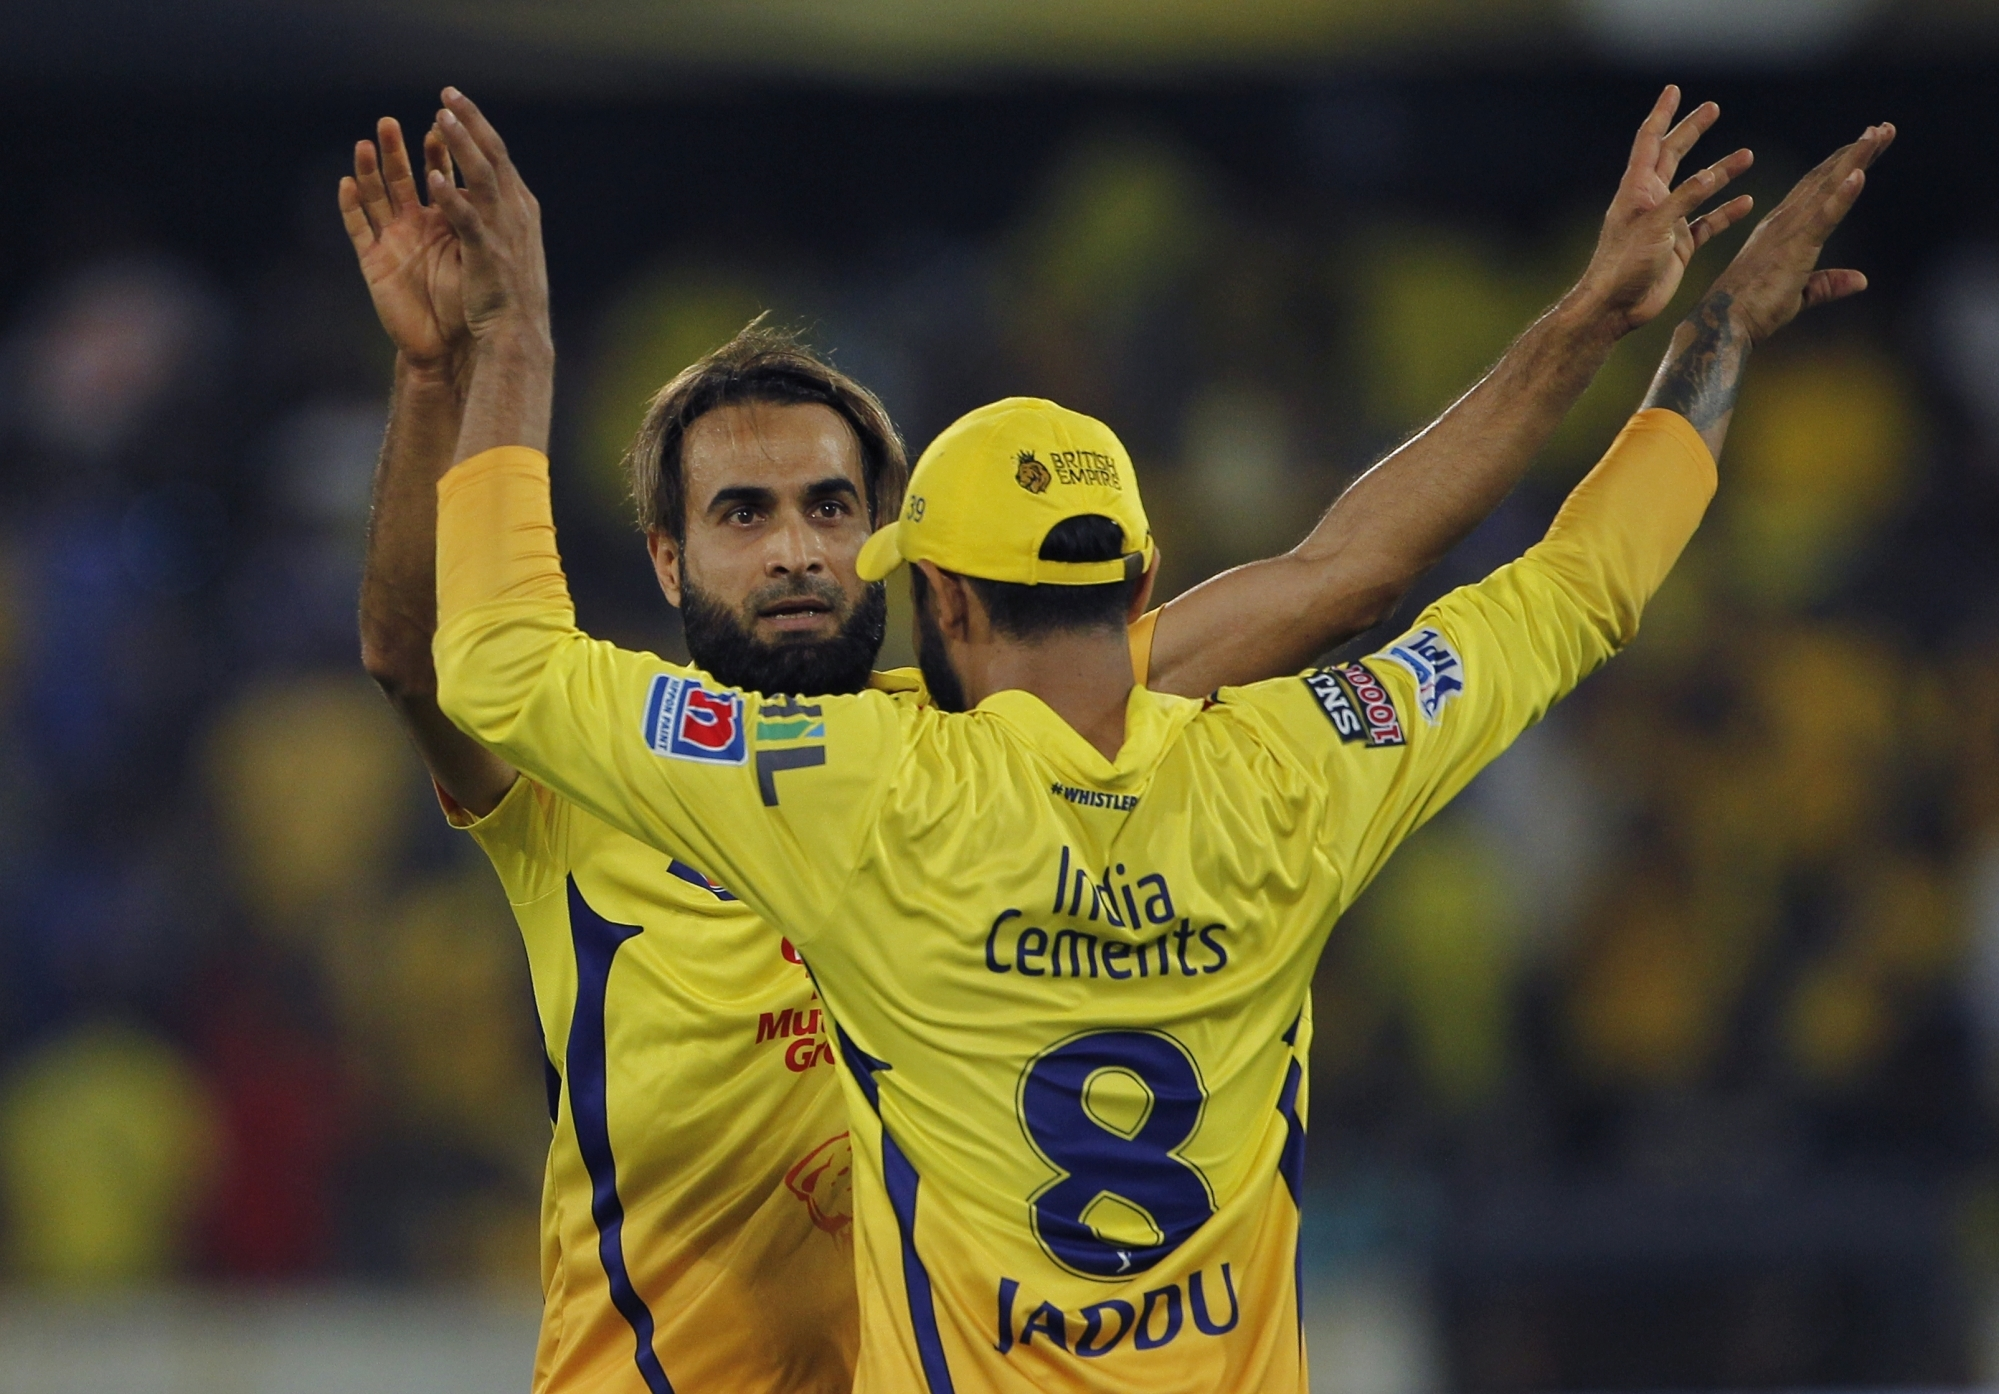 Imran Tahir took 26 wickets in IPL 2019  - the most by any bowler (photo - IANS)